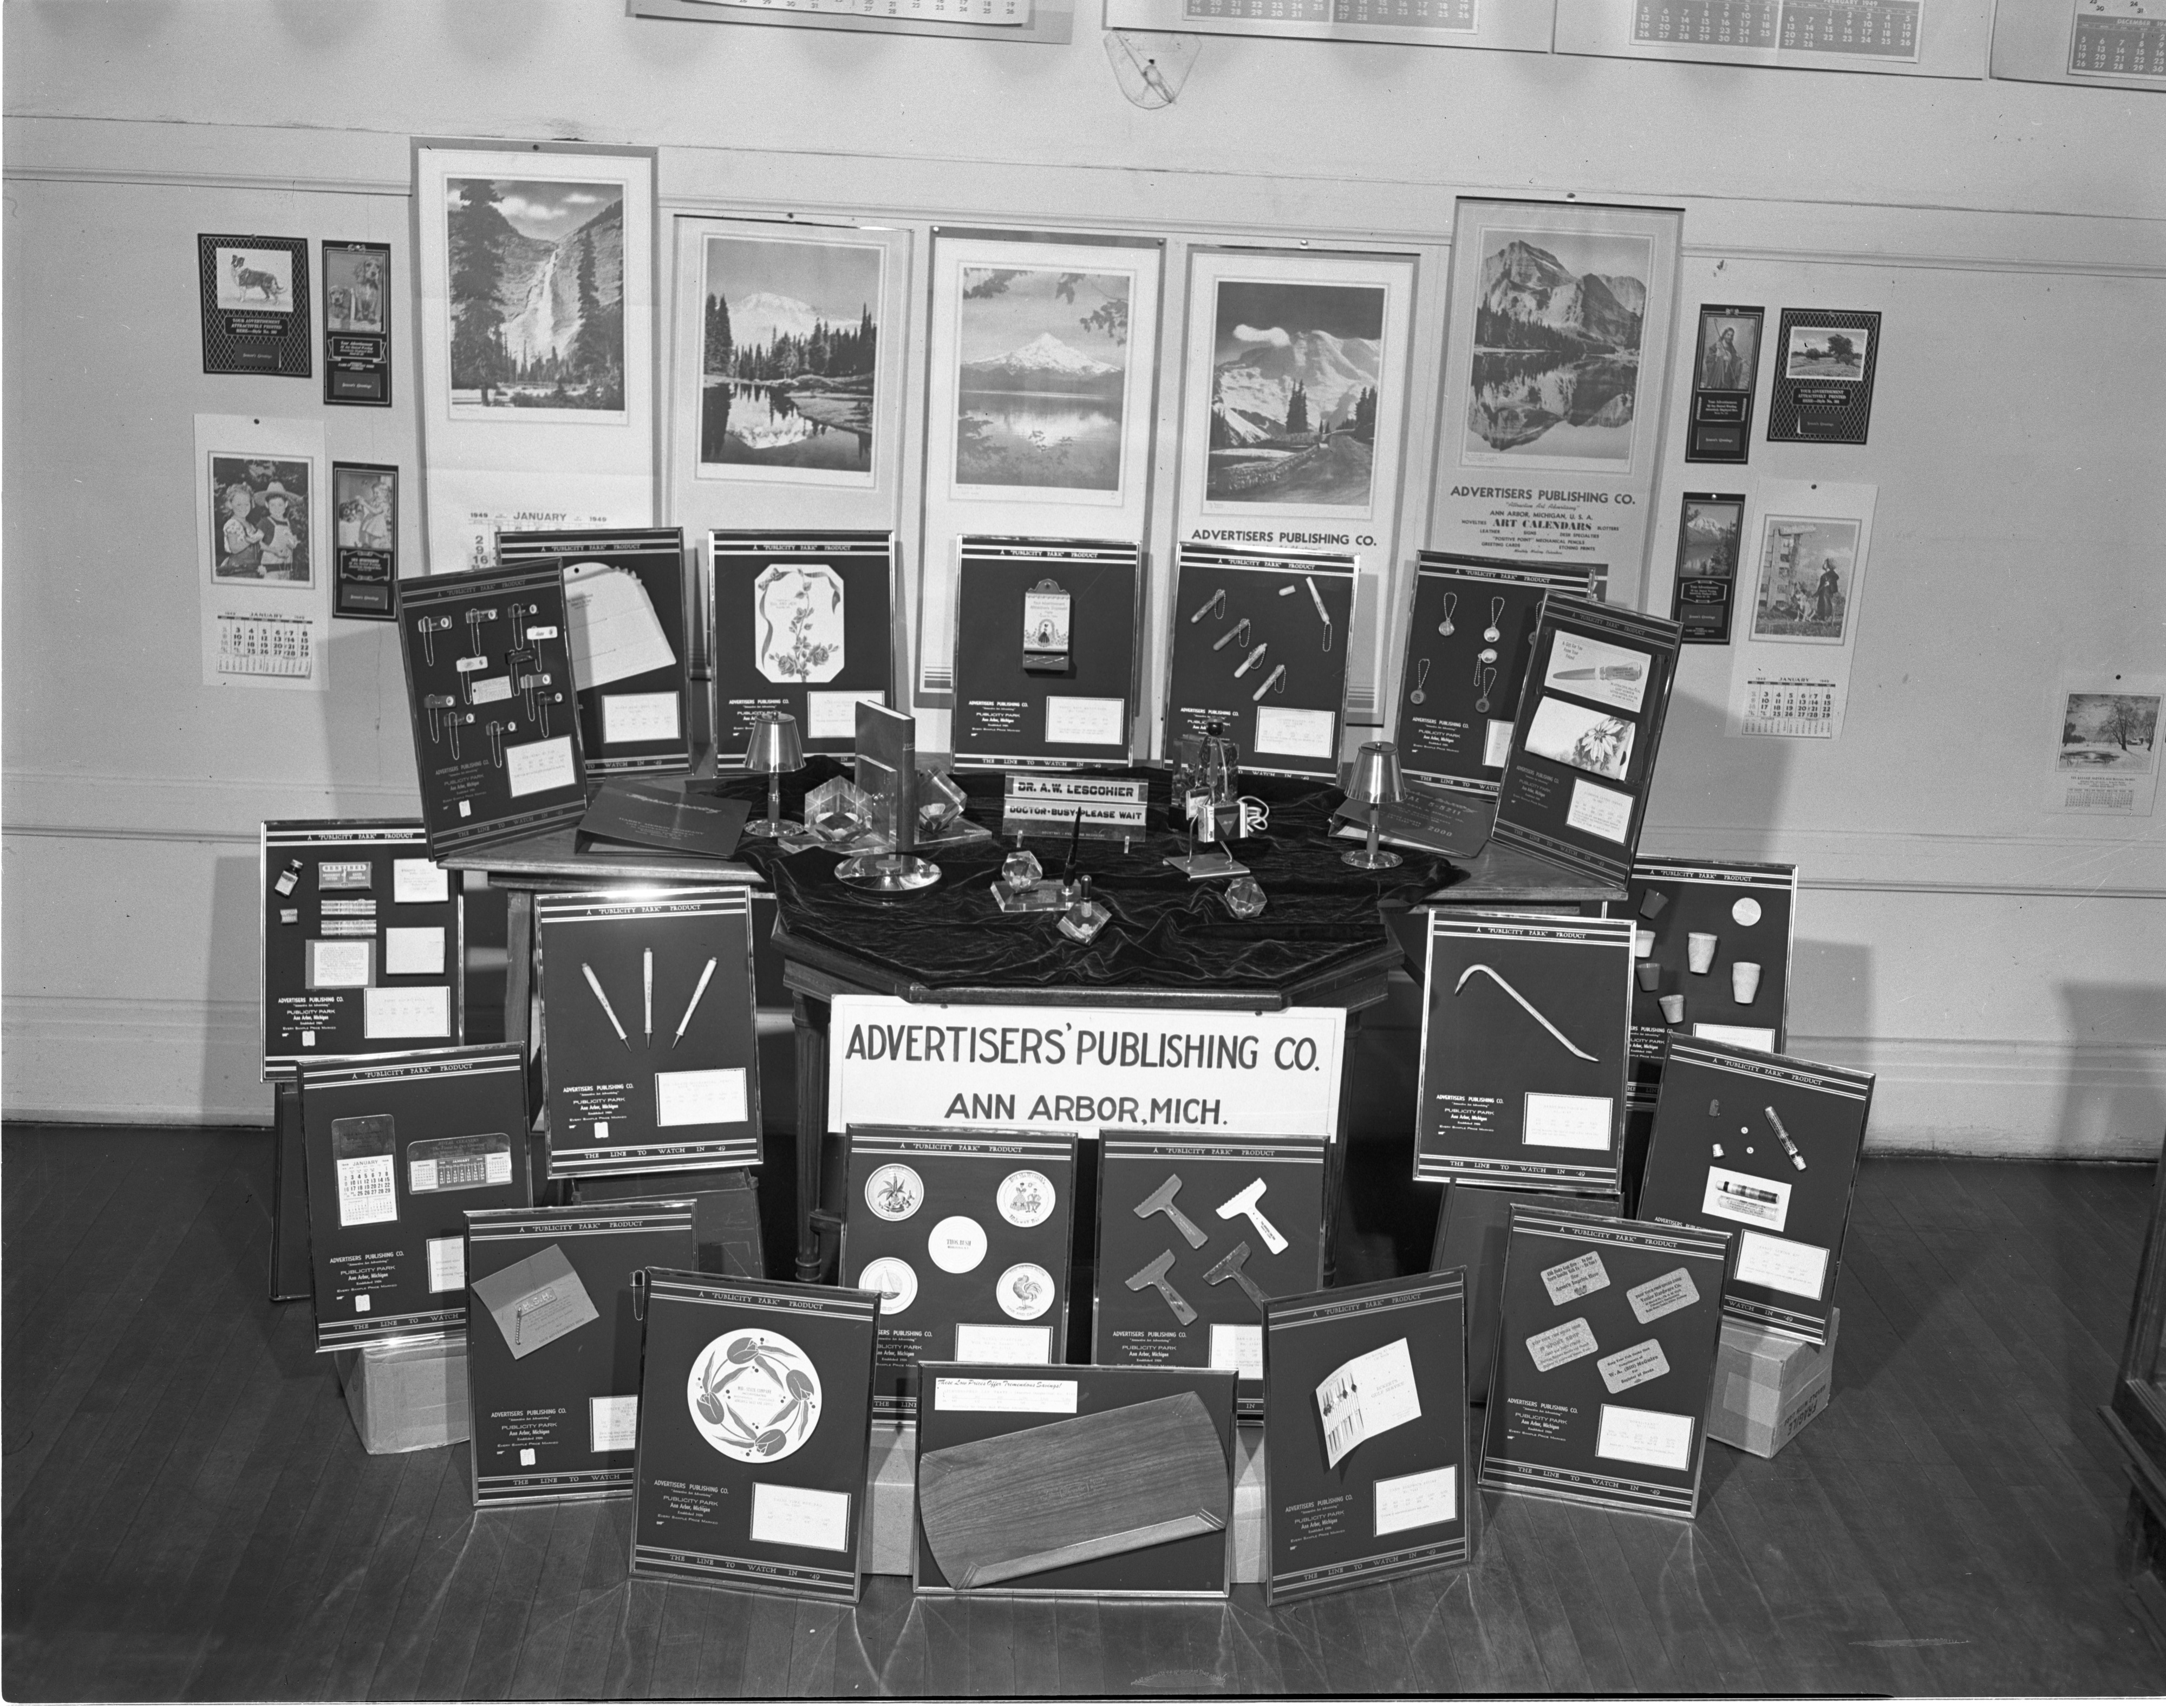 Advertisers Publishing Co. Product Display, September 1948 image